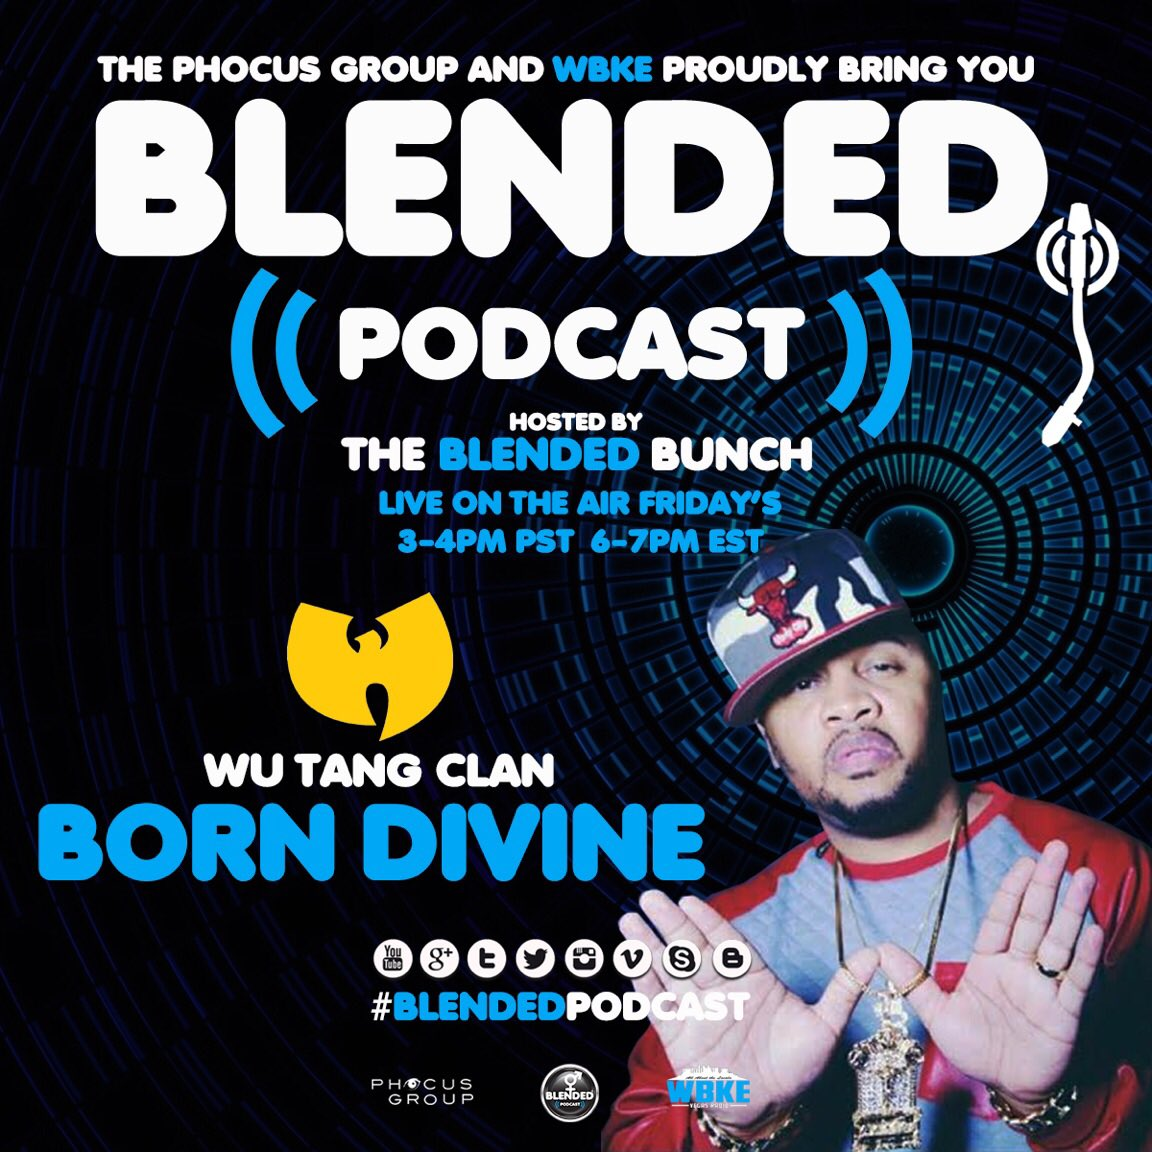 You don't wanna miss this today!!! #GetBlended #WuTang #TheBlendedBunch #InariVachs